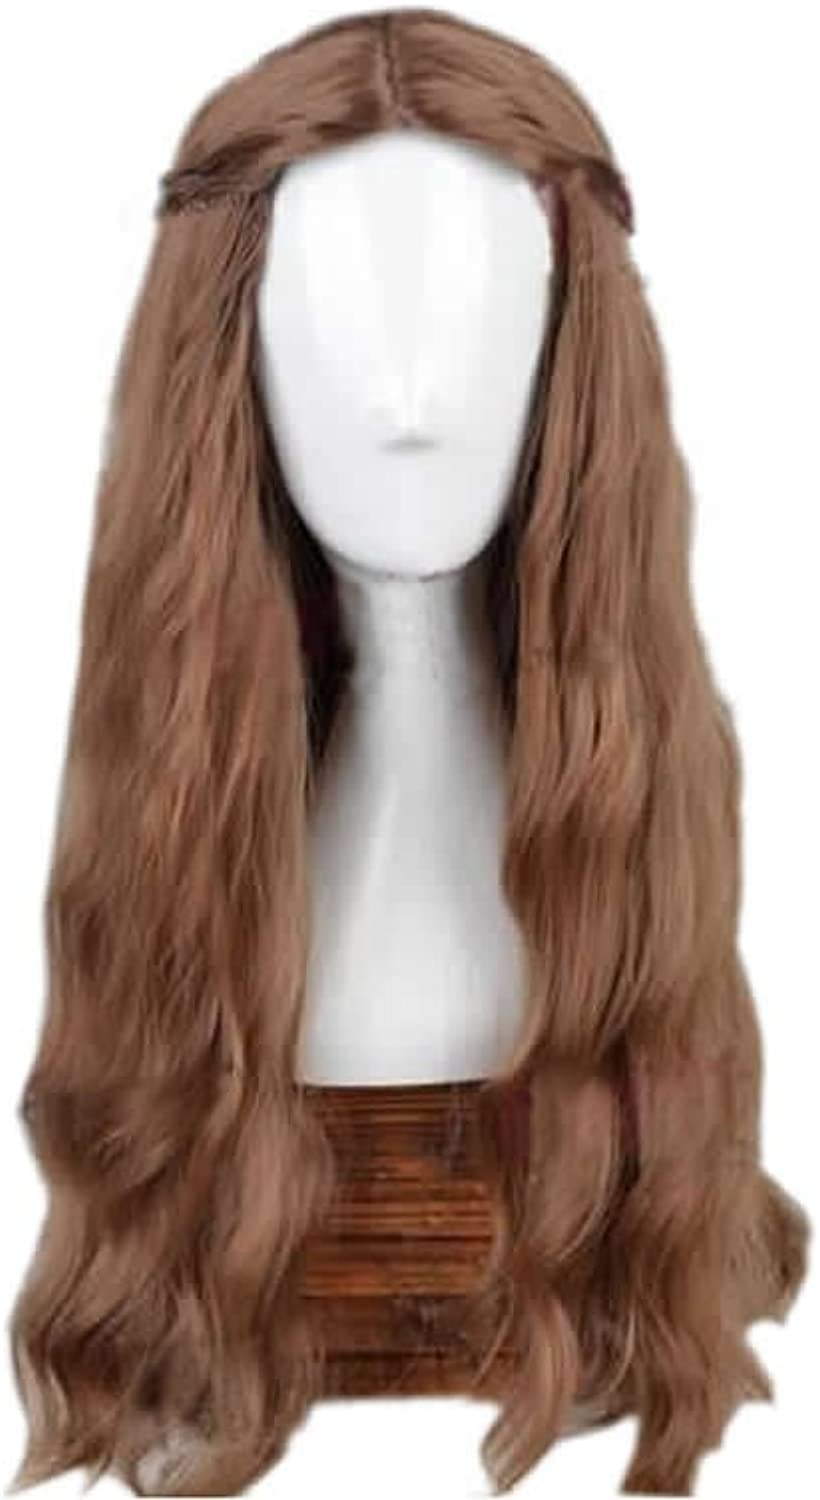 Xoser Game Cosplay of Thrones Margaery Tyrell Long Wave High Level Wig